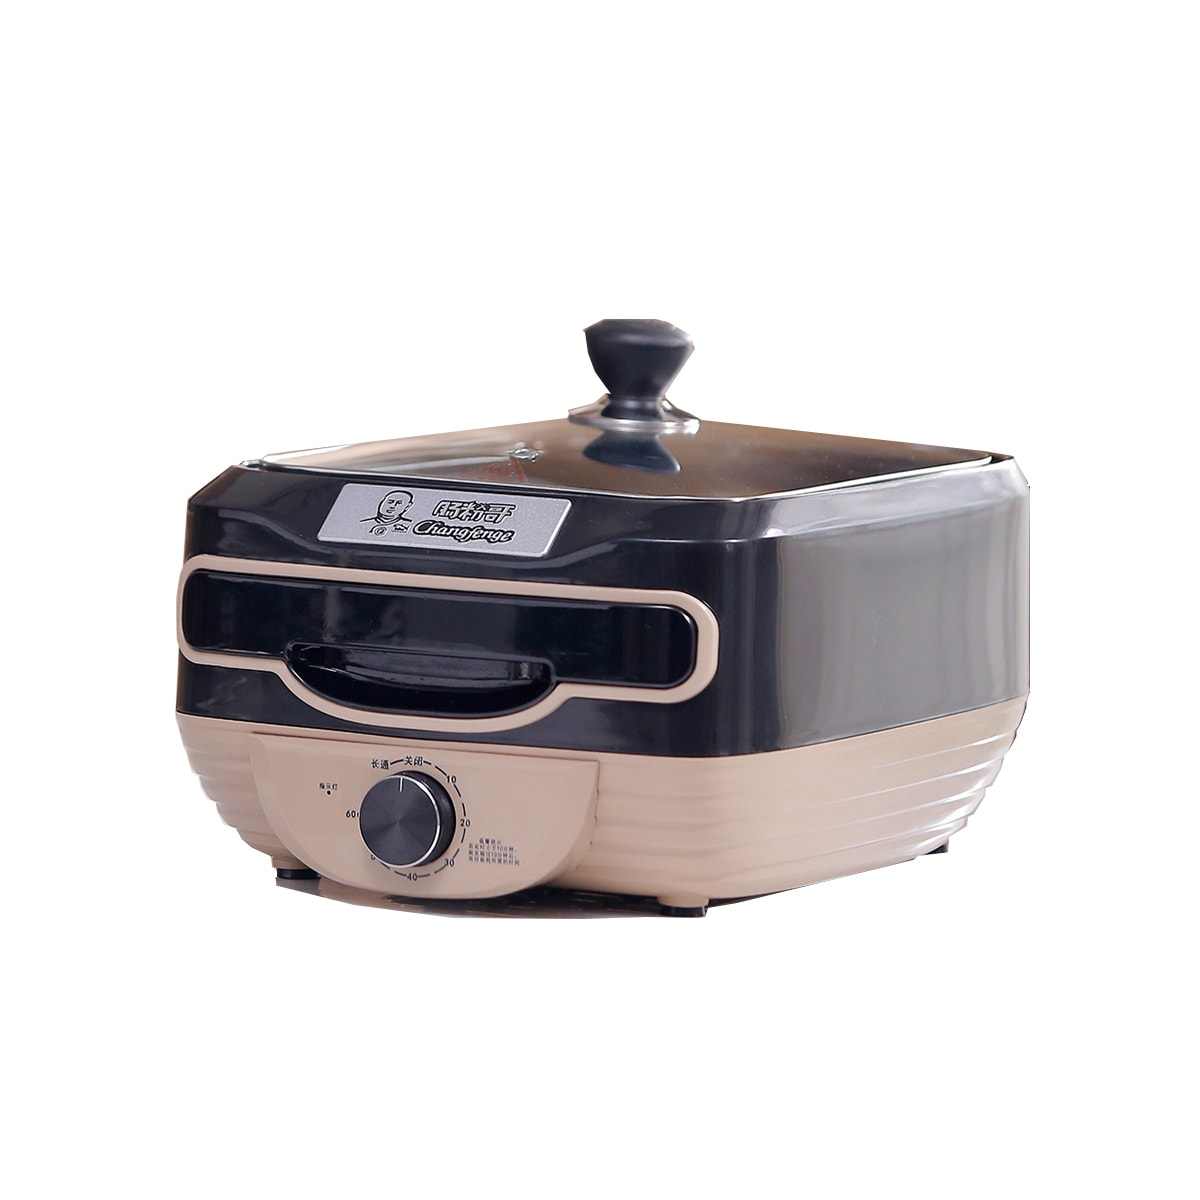 Yamibuy.com:Customer reviews:[New] Electronic Multi functional Changfenge Rice Noodle Roll Steamer Cooking Machine 6L